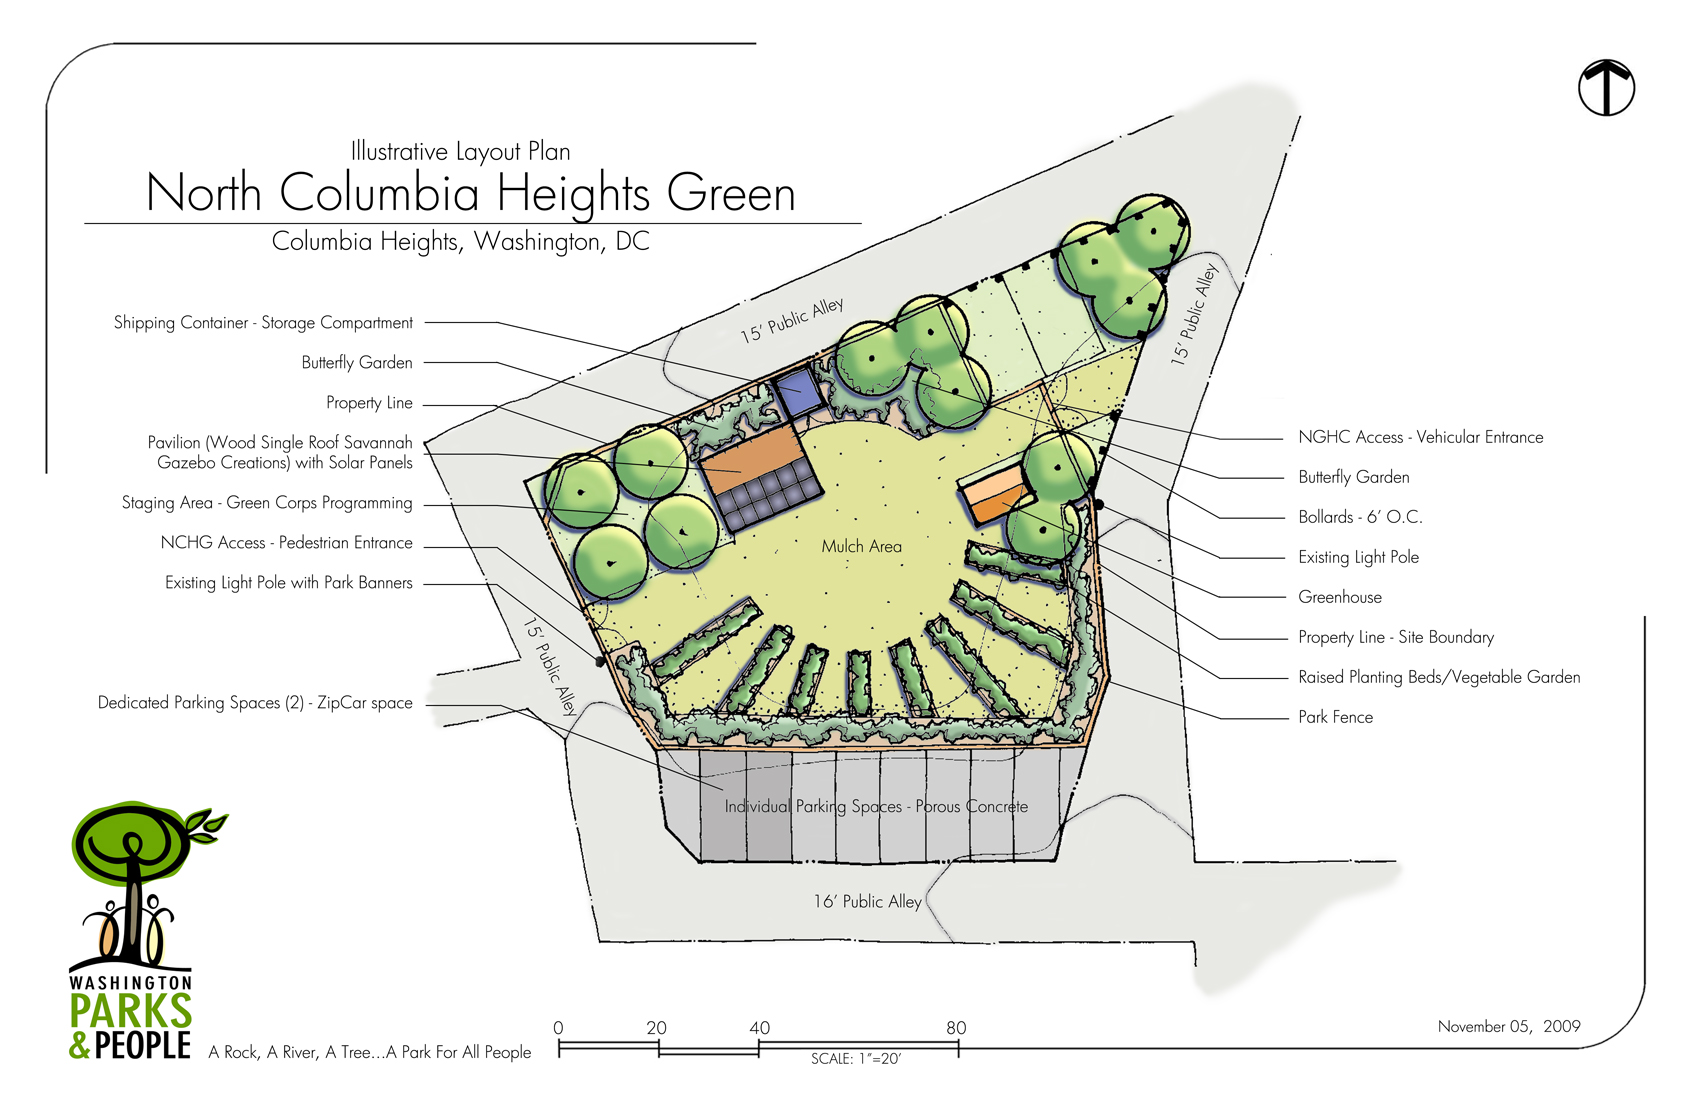 North columbia heights green update park view d c for Arid garden design 7 little words